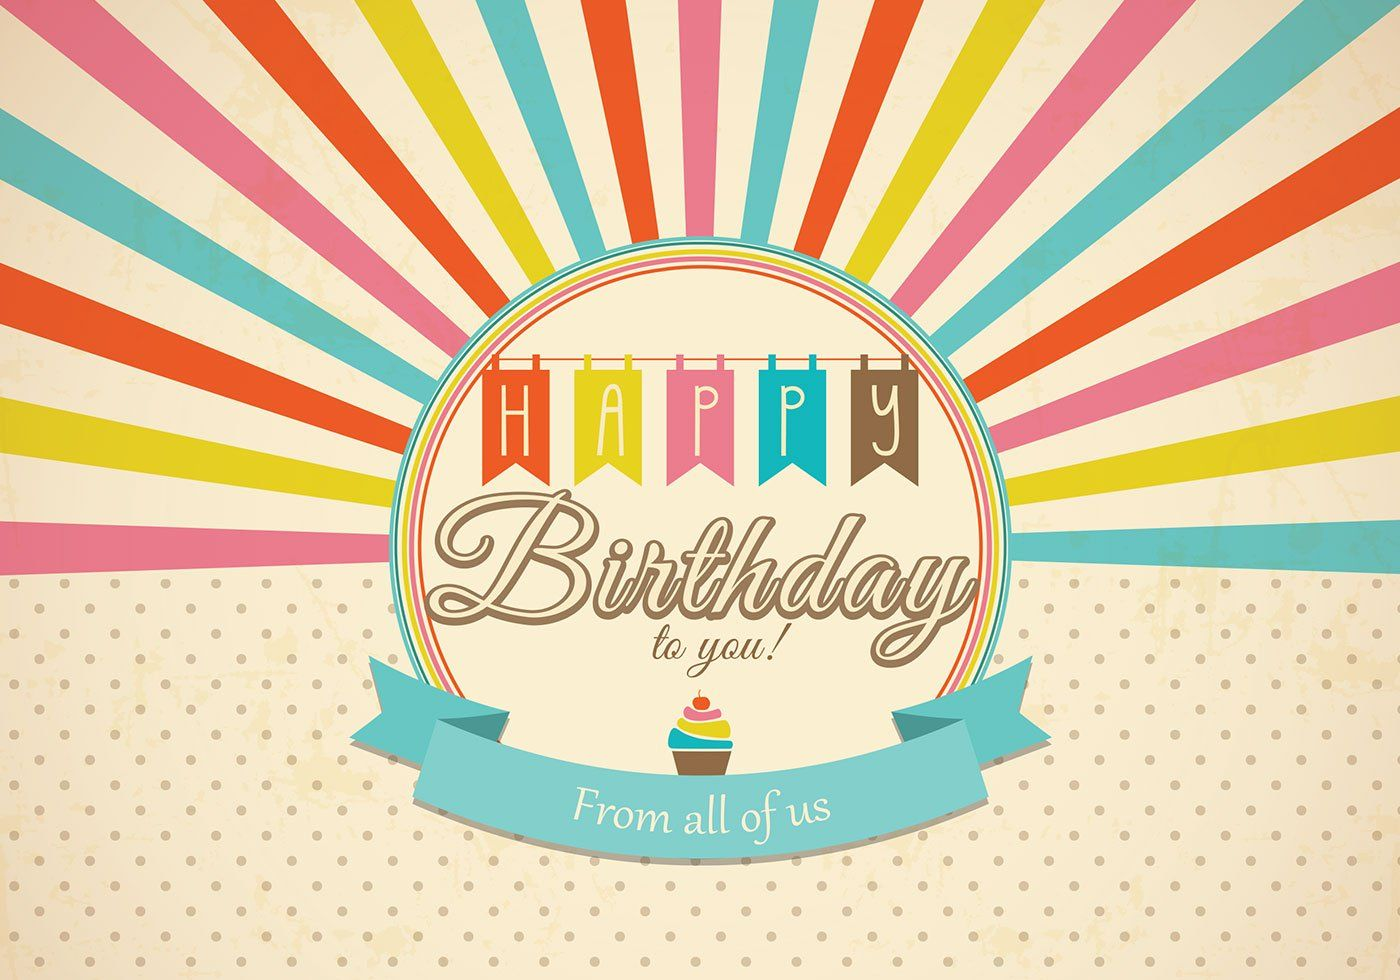 Retro Happy Birthday Card Psd - Free Photoshop Brushes At Within